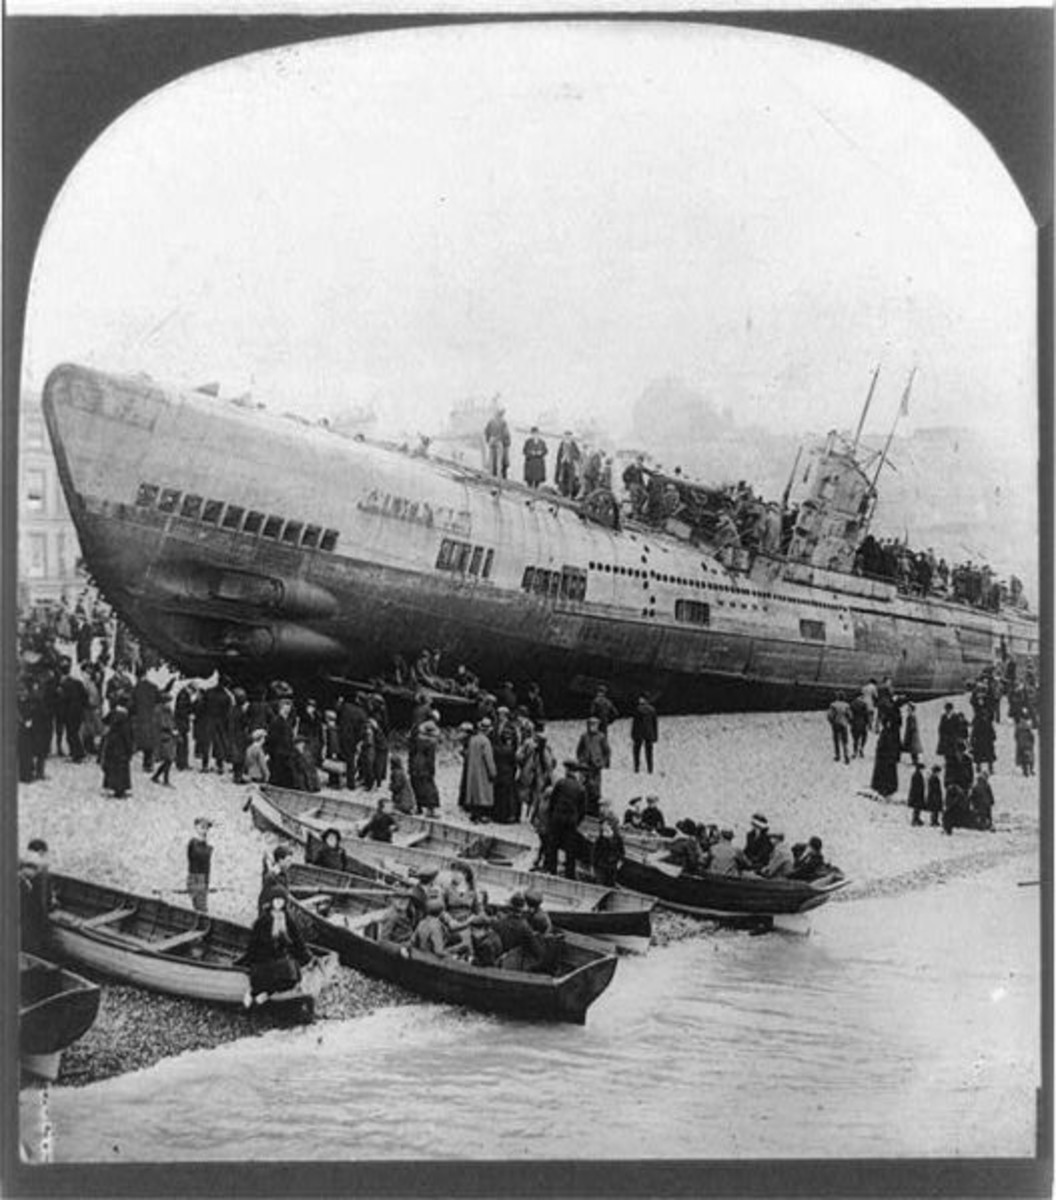 WWI: U118 crowded with tourists while washed ashore at Hastings, England.